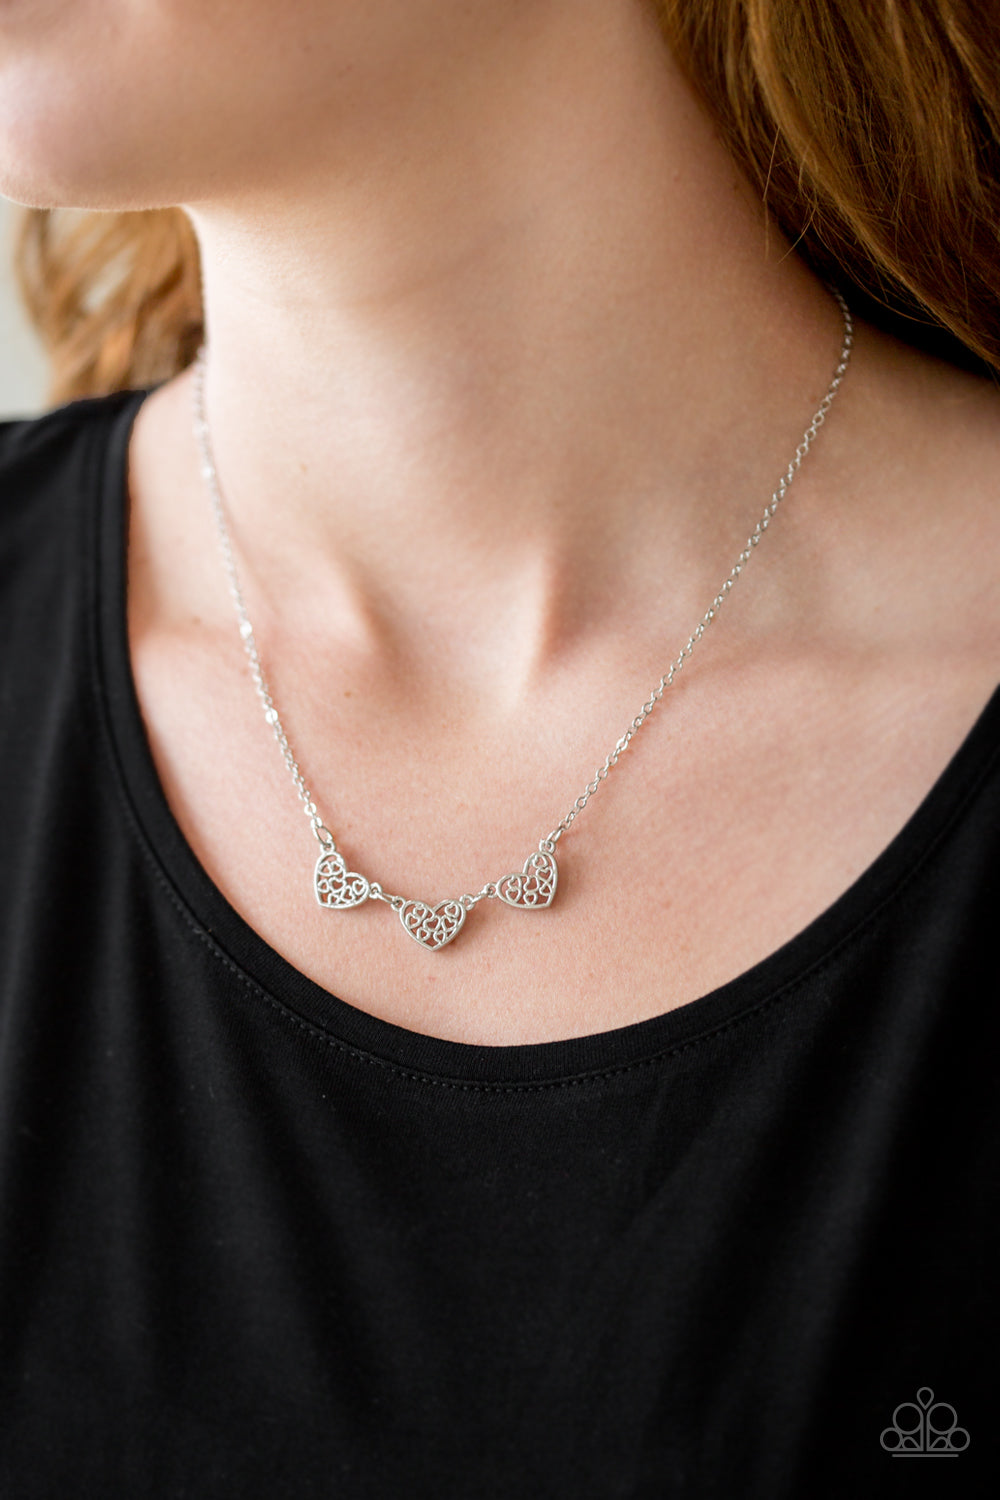 Another Love Story - silver - Paparazzi necklace